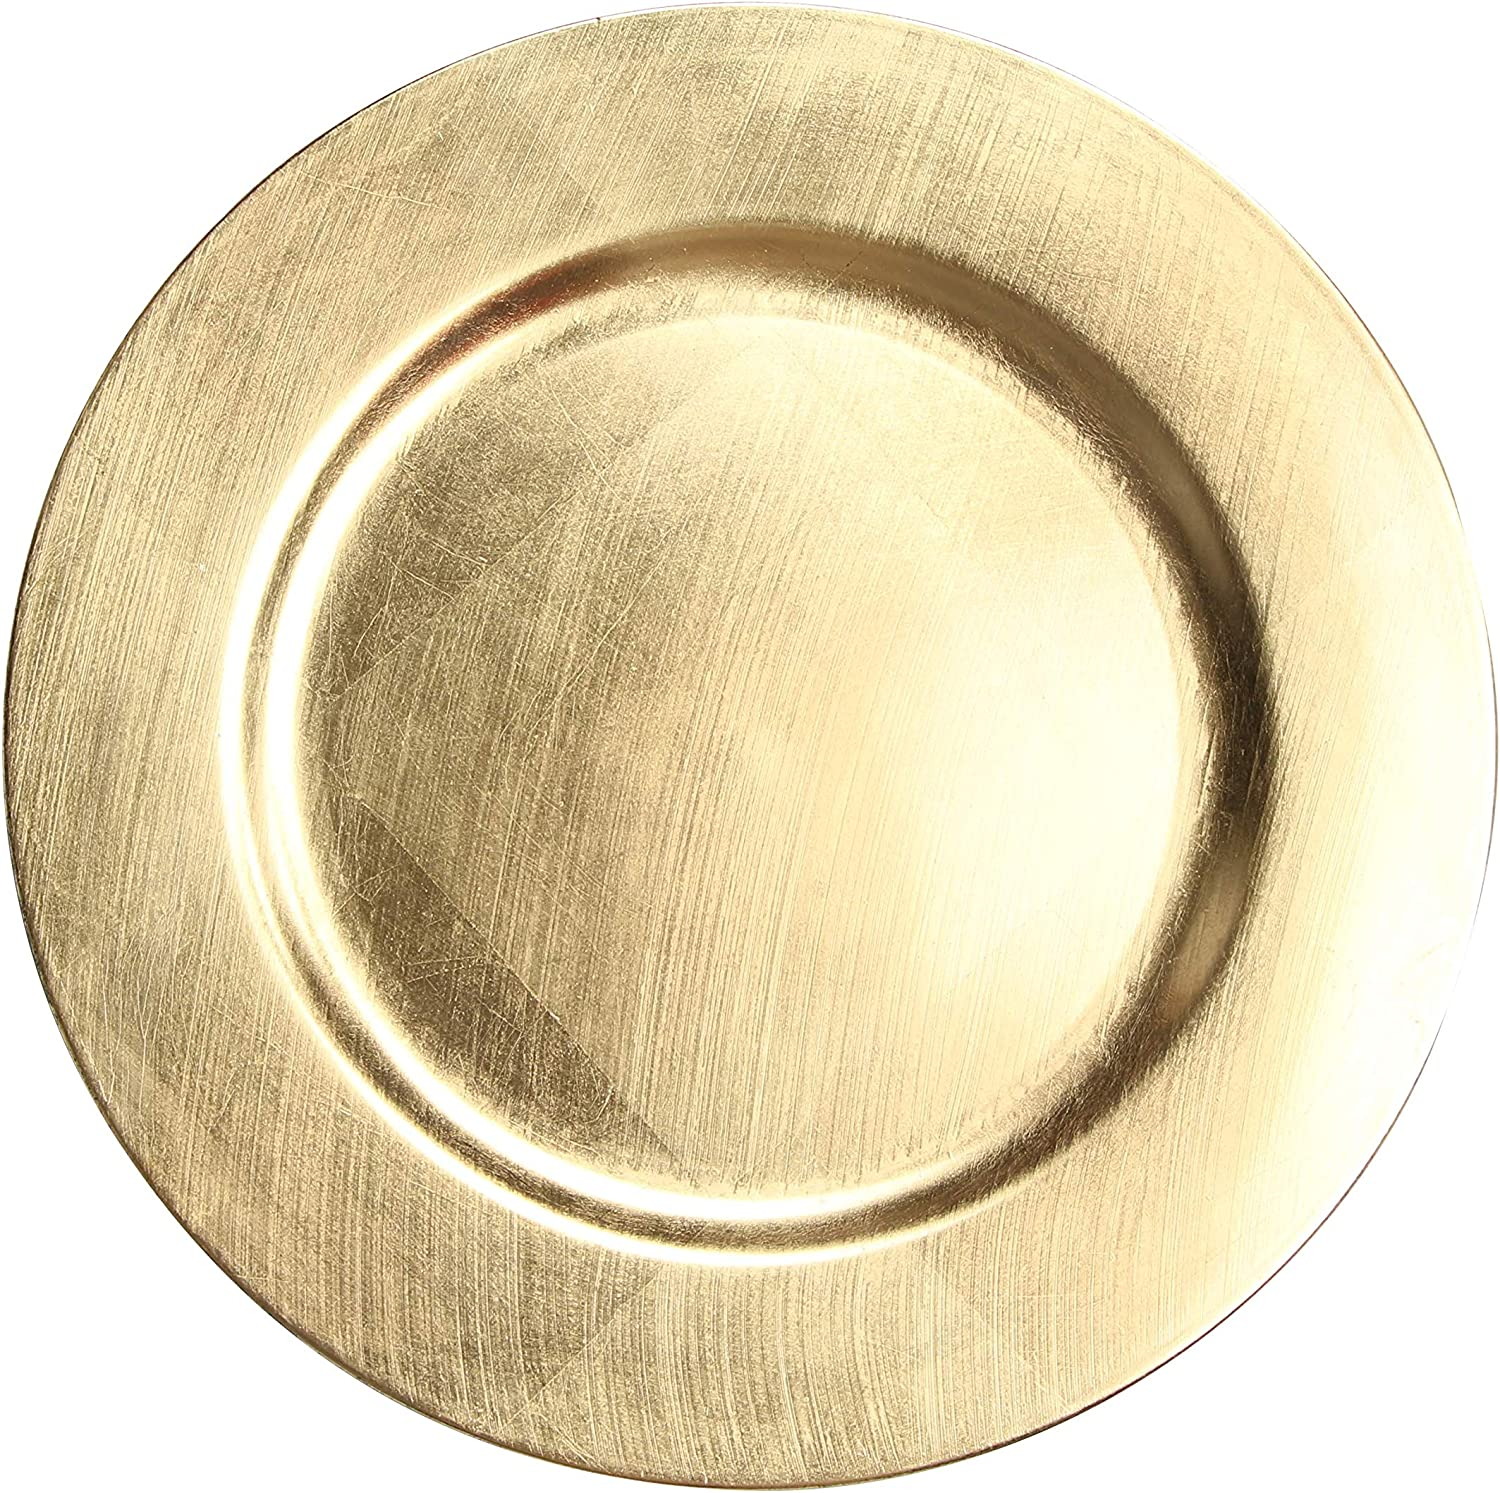 USA Party Flower 13 Inch Elegant Hand Brushed Finish Plastic Charger Plate Set of 12 (Gold)